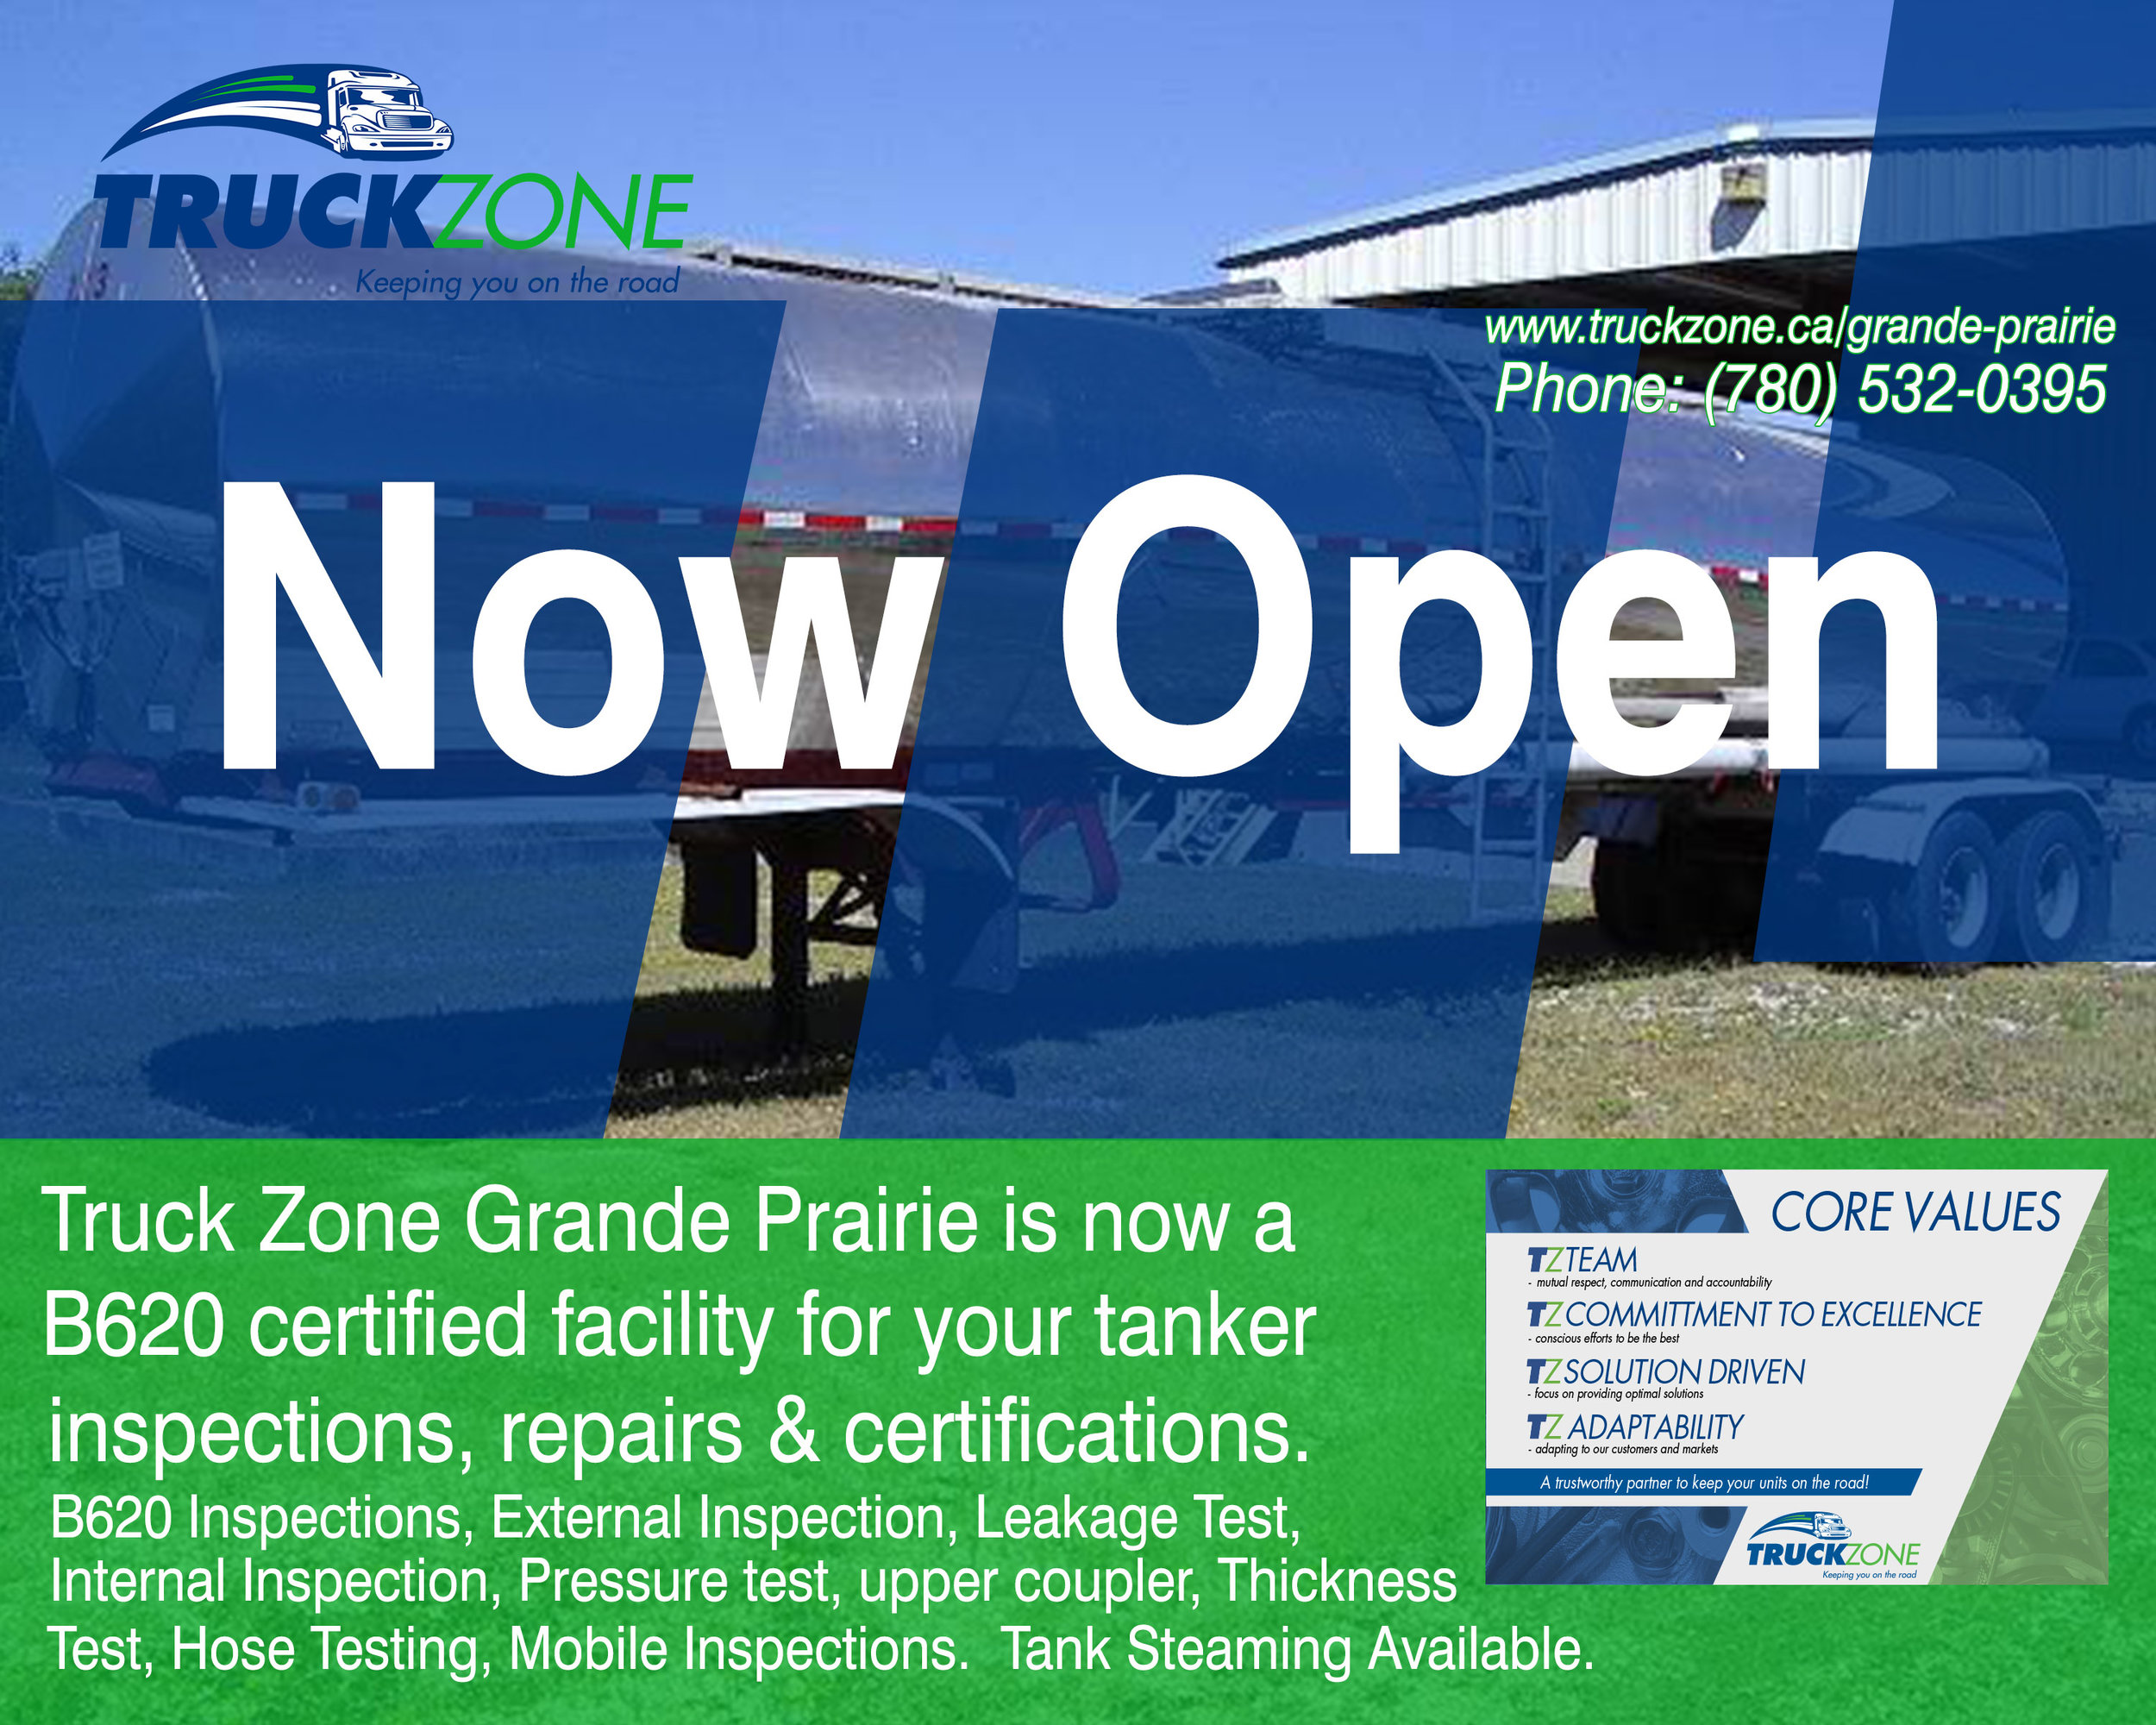 Truck Zone Grande Prairie is now a B620 certified facility for your